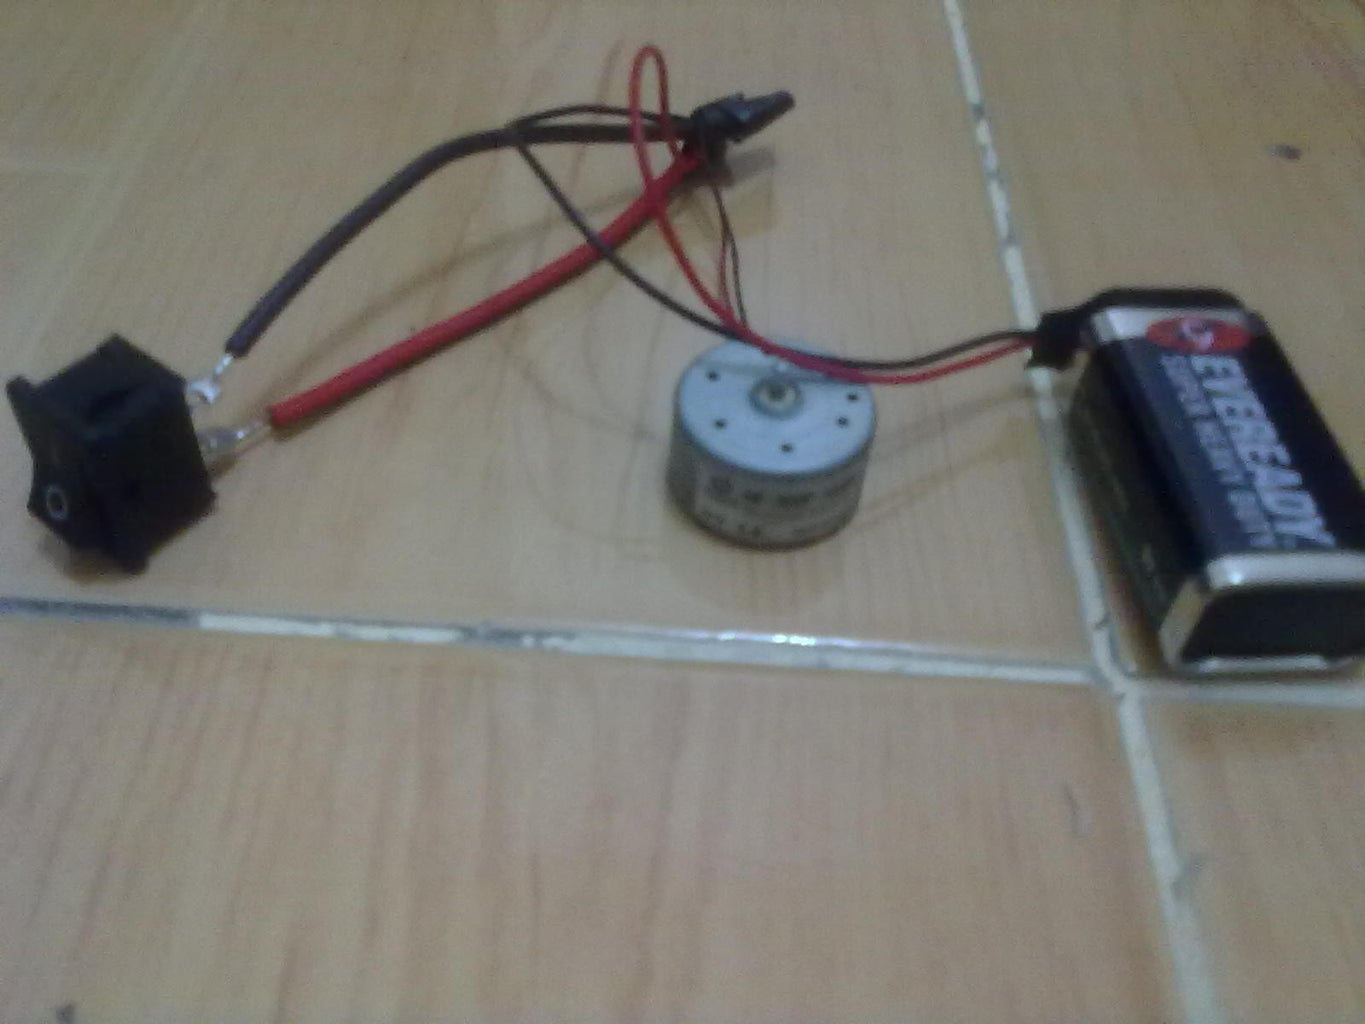 Solder the Wires of the Switch, Battery Clip and Hobby Motor